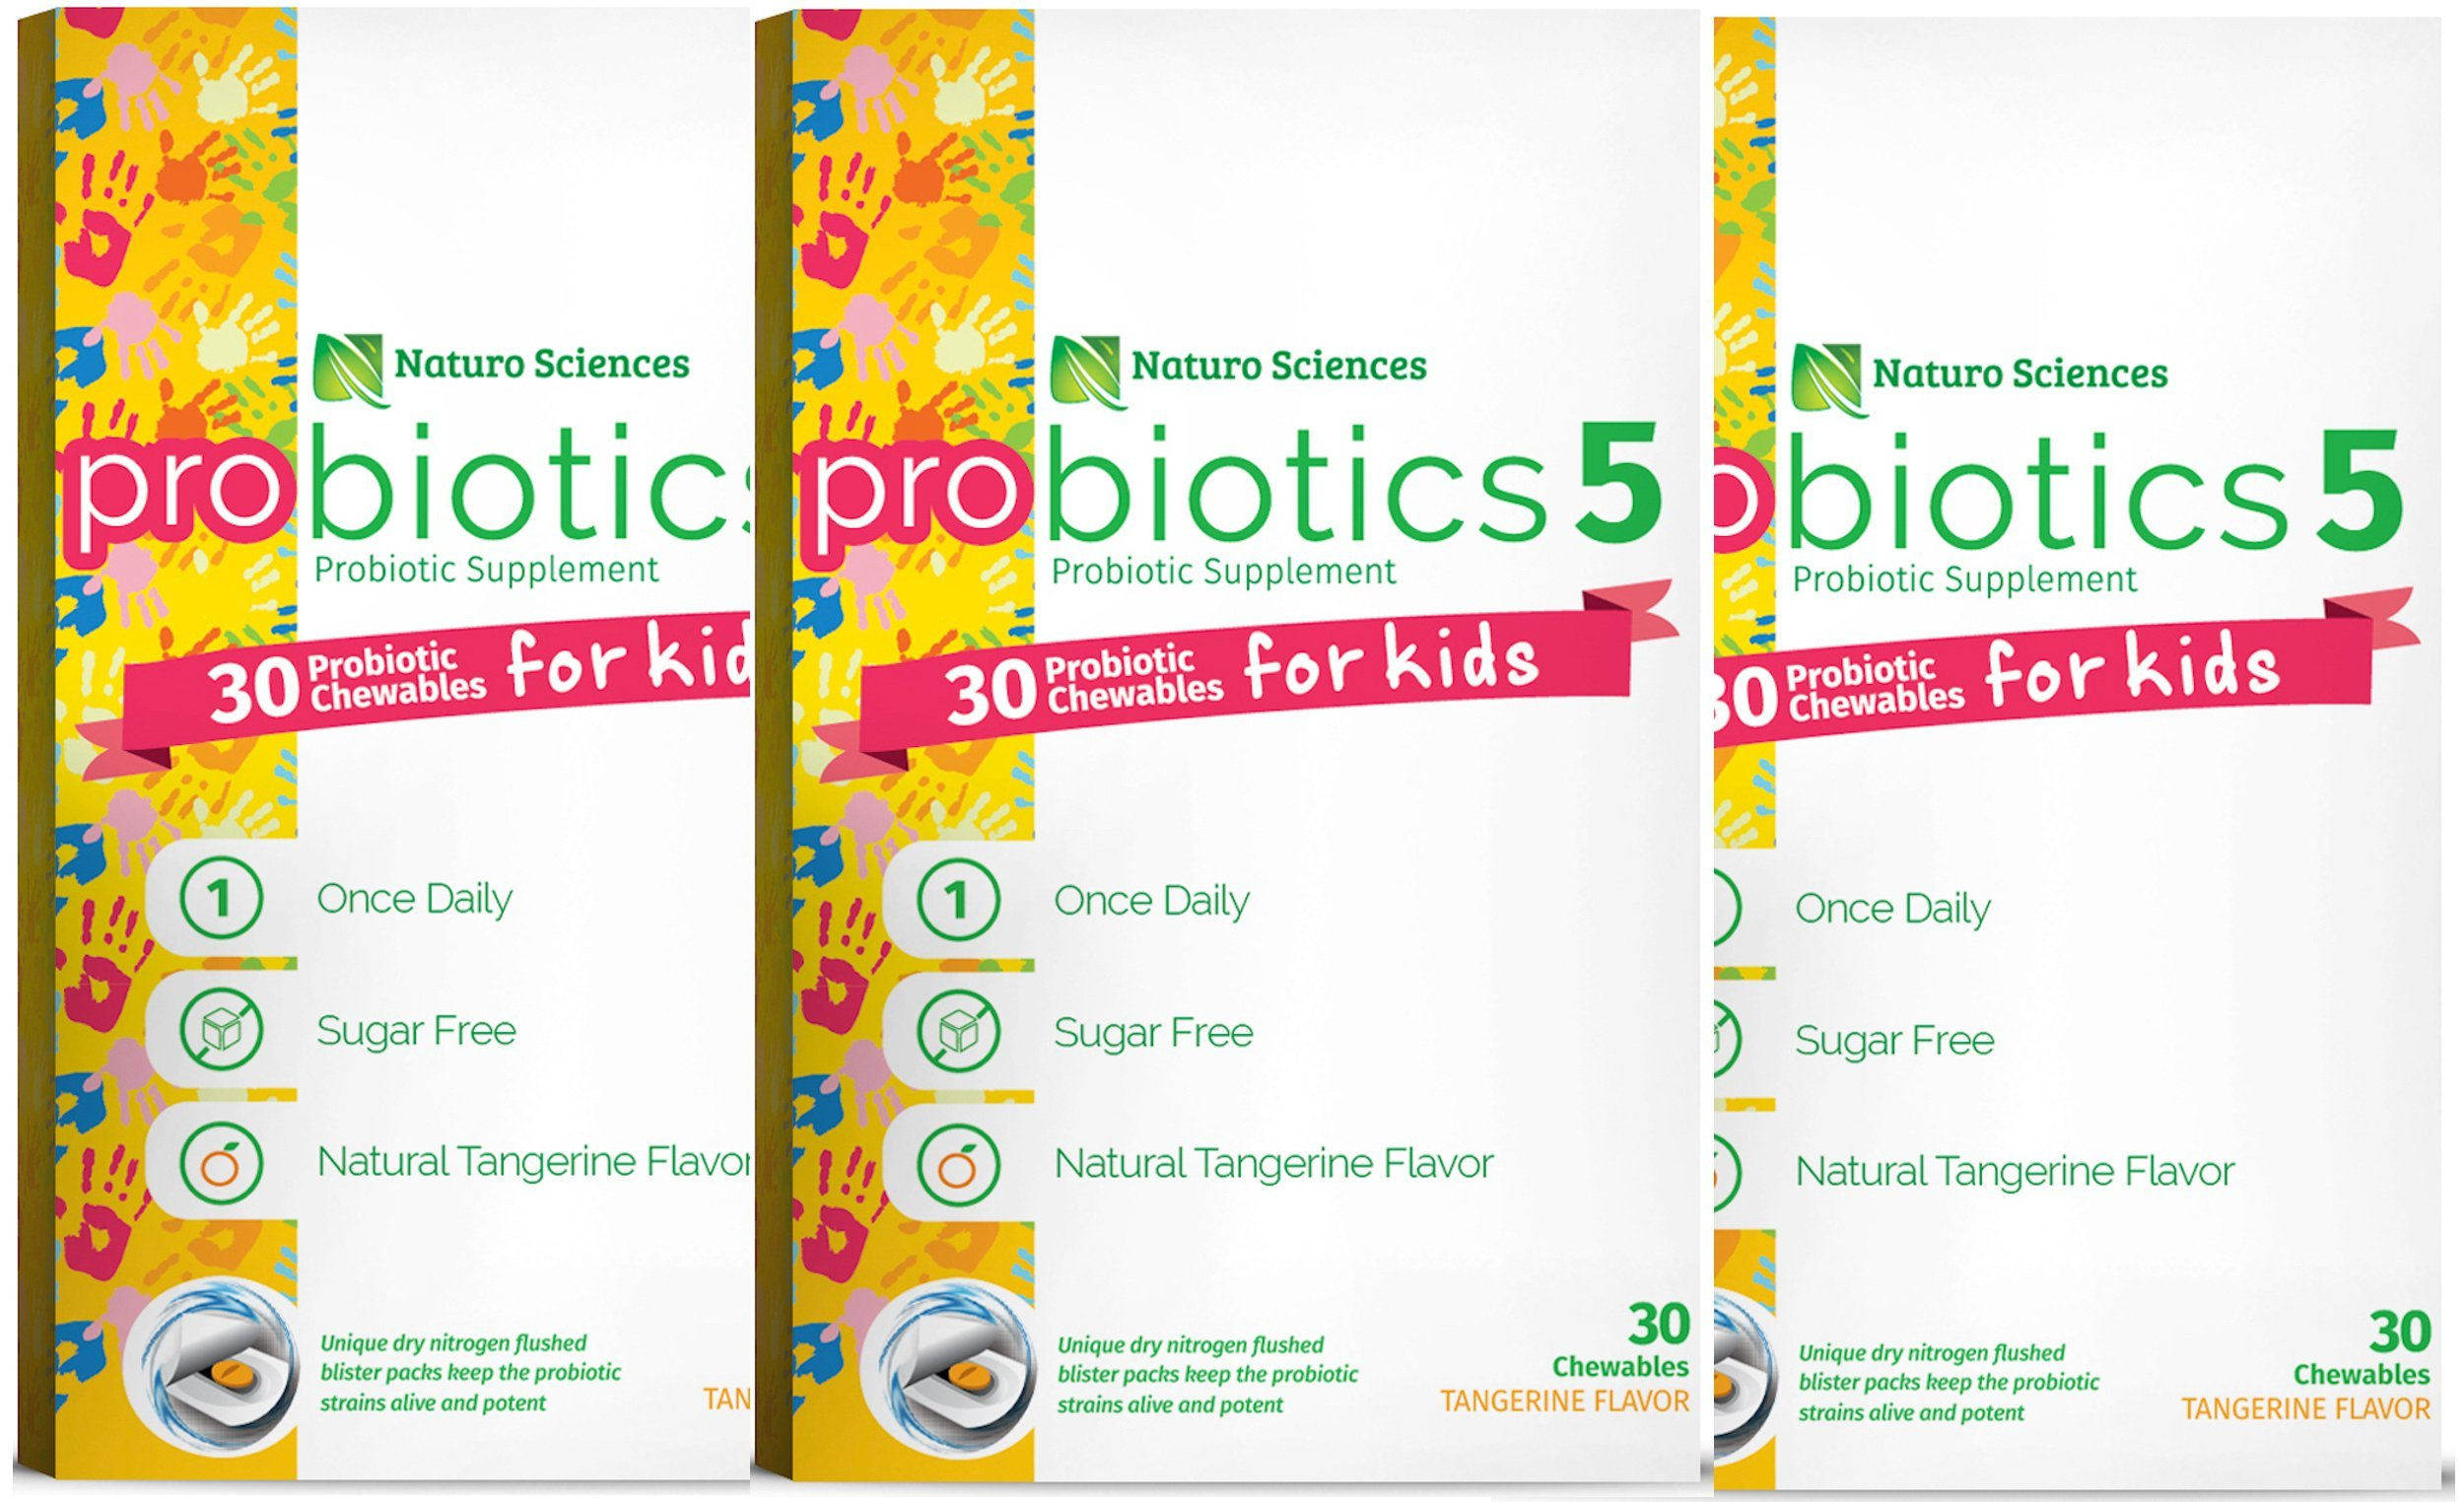 Naturo Sciences, Chewable Kids Digestive Probiotics, Nitrogen Filled Blister Packs for Best Product Freshness, 30 Once Daily Sugar Free Natural Tangerine Favor - Pack of Three